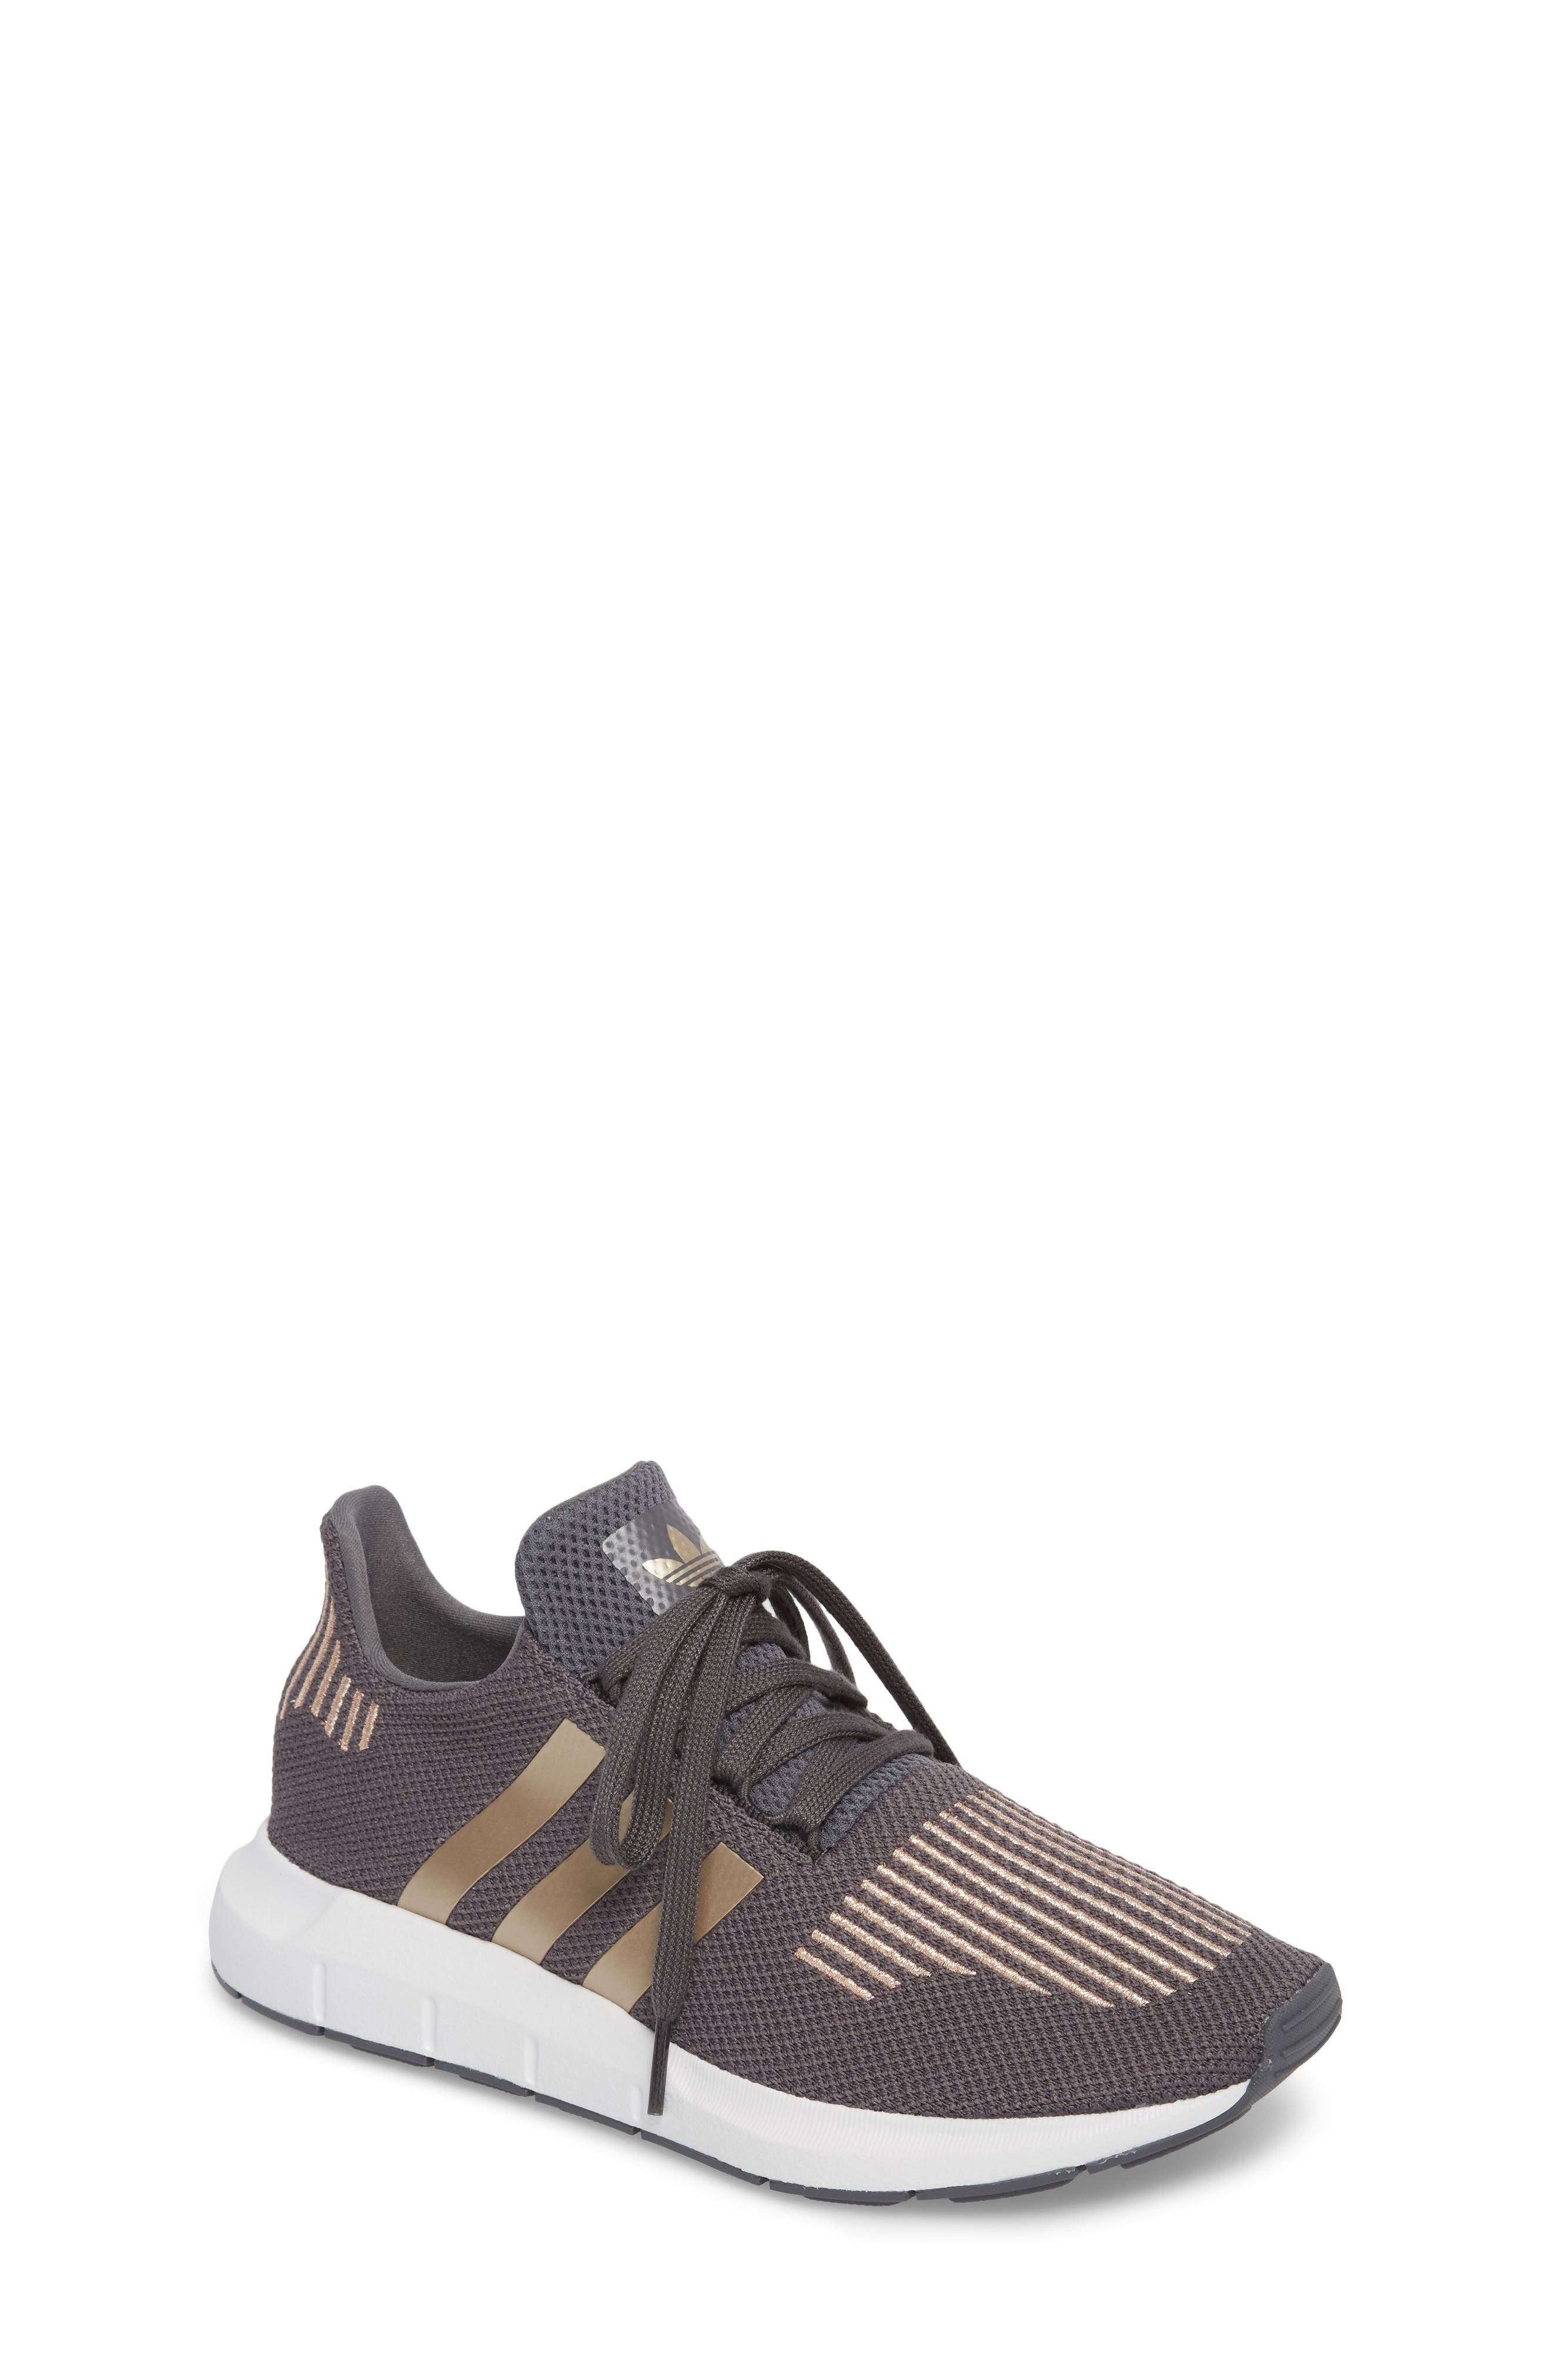 Swift Run Sneaker,                         Main,                         color, Grey / Copper / White